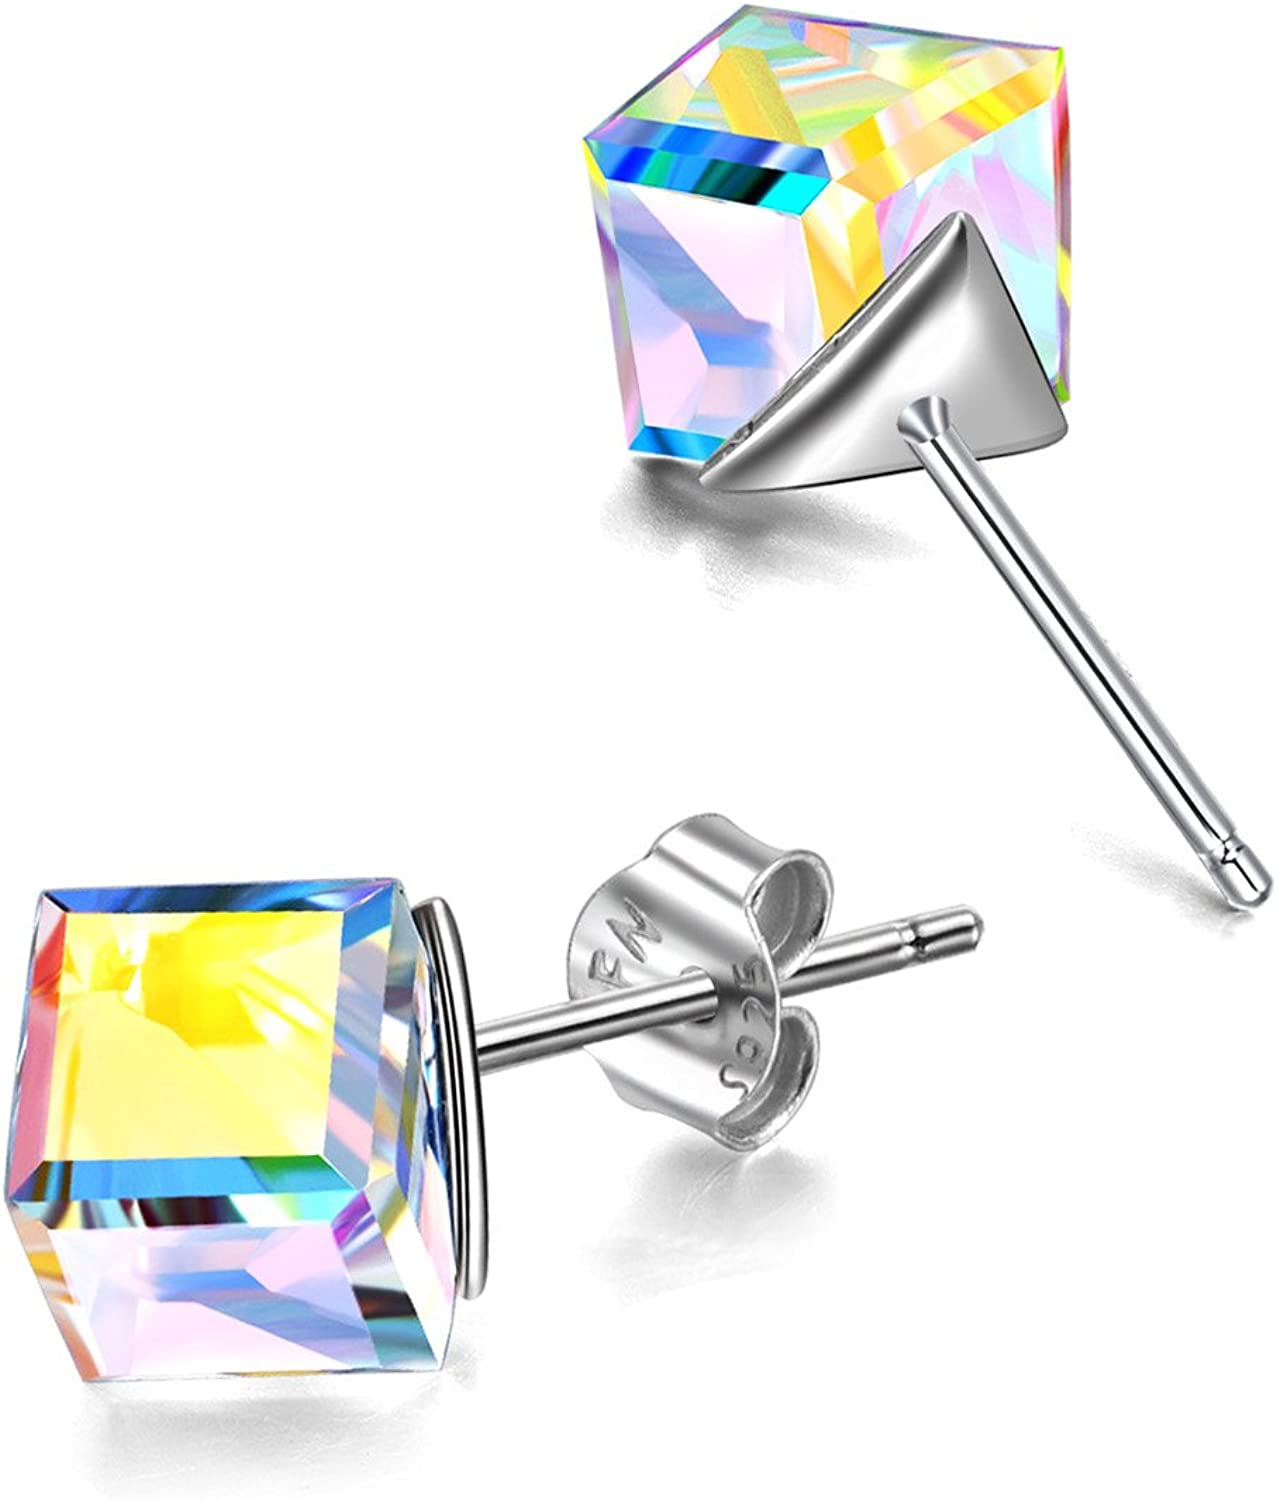 Small Square Stud EarringsMother/'s Day Gift Square Stud Earrings Geometric Stud Earrings Square Stud Earrings Geometric Earrings